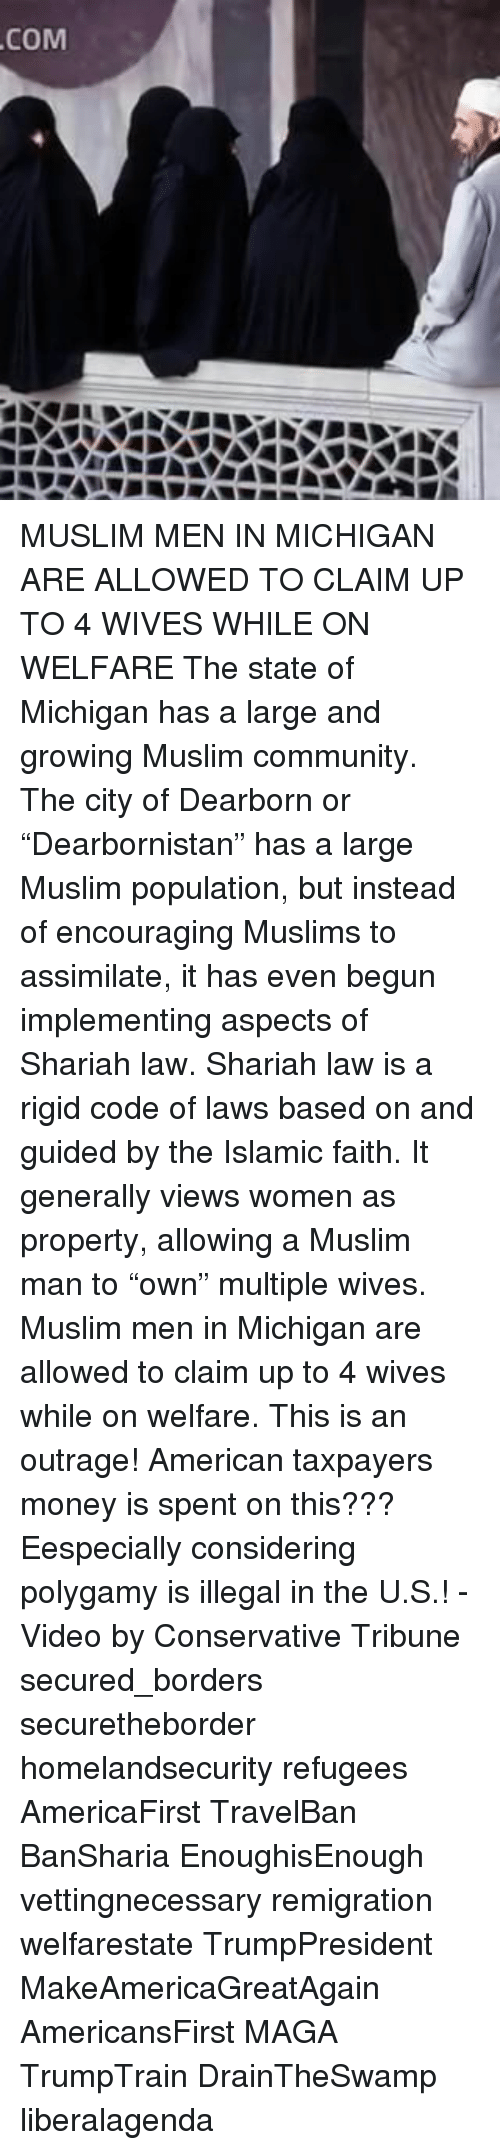 """Memes, 🤖, and Code: COM MUSLIM MEN IN MICHIGAN ARE ALLOWED TO CLAIM UP TO 4 WIVES WHILE ON WELFARE The state of Michigan has a large and growing Muslim community. The city of Dearborn or """"Dearbornistan"""" has a large Muslim population, but instead of encouraging Muslims to assimilate, it has even begun implementing aspects of Shariah law. Shariah law is a rigid code of laws based on and guided by the Islamic faith. It generally views women as property, allowing a Muslim man to """"own"""" multiple wives. Muslim men in Michigan are allowed to claim up to 4 wives while on welfare. This is an outrage! American taxpayers money is spent on this??? Eespecially considering polygamy is illegal in the U.S.! - Video by Conservative Tribune secured_borders securetheborder homelandsecurity refugees AmericaFirst TravelBan BanSharia EnoughisEnough vettingnecessary remigration welfarestate TrumpPresident MakeAmericaGreatAgain AmericansFirst MAGA TrumpTrain DrainTheSwamp liberalagenda"""